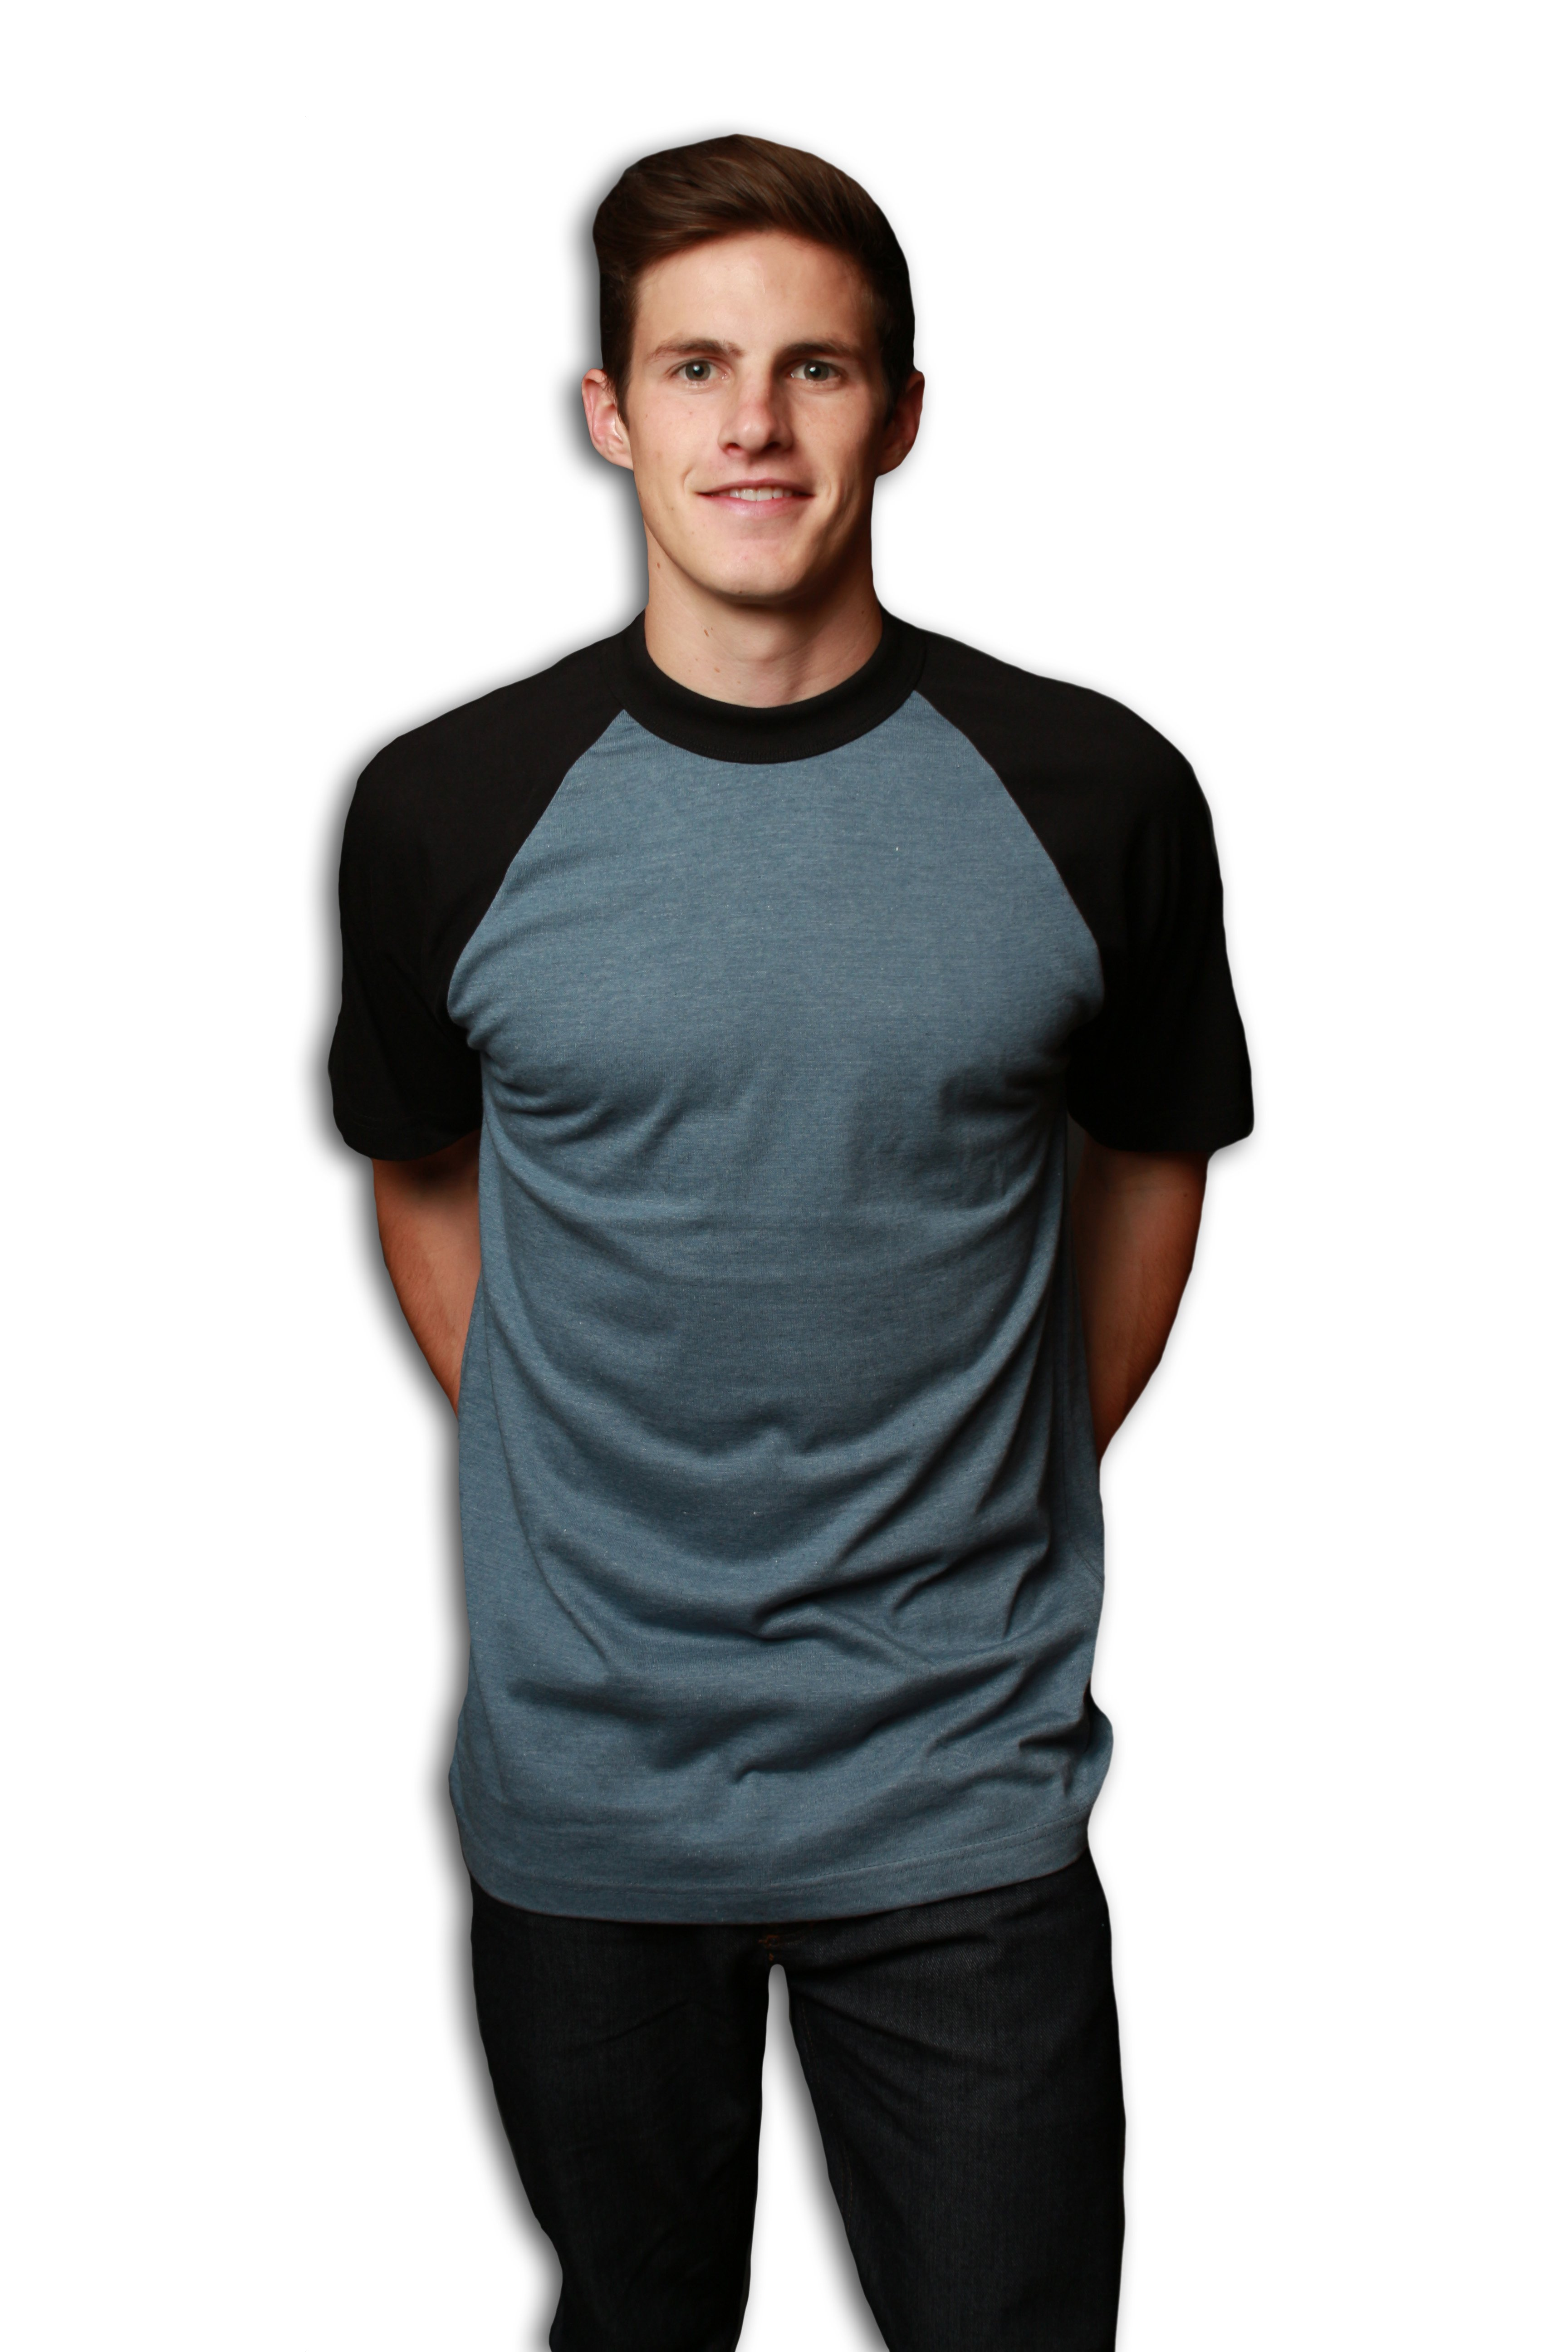 0a63ddf1 Men's Premium 32-Single Contrast Raglan Sleeve T-Shirt - MTSC13158 ...